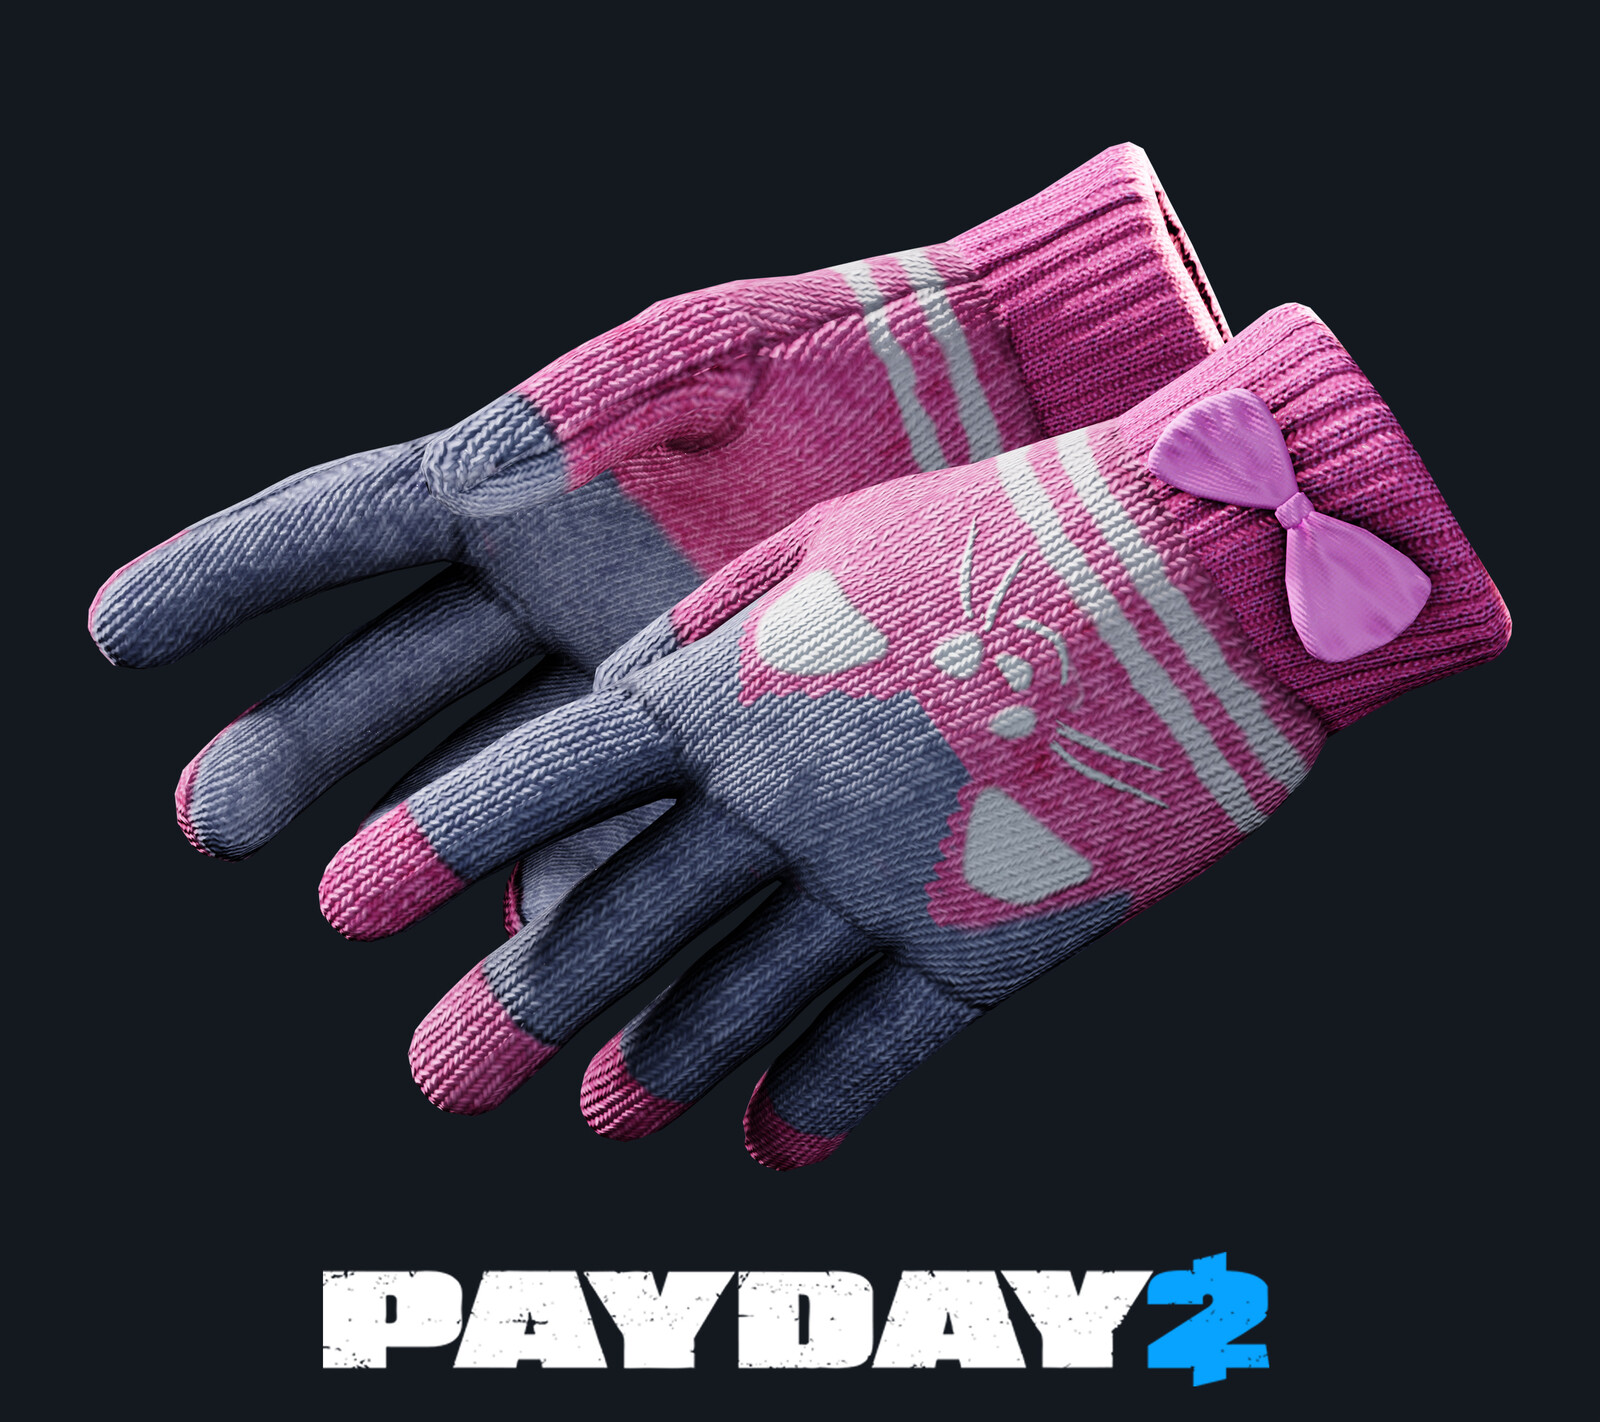 Payday 2: Gloves Cosmetics (Tailor Pack 03)